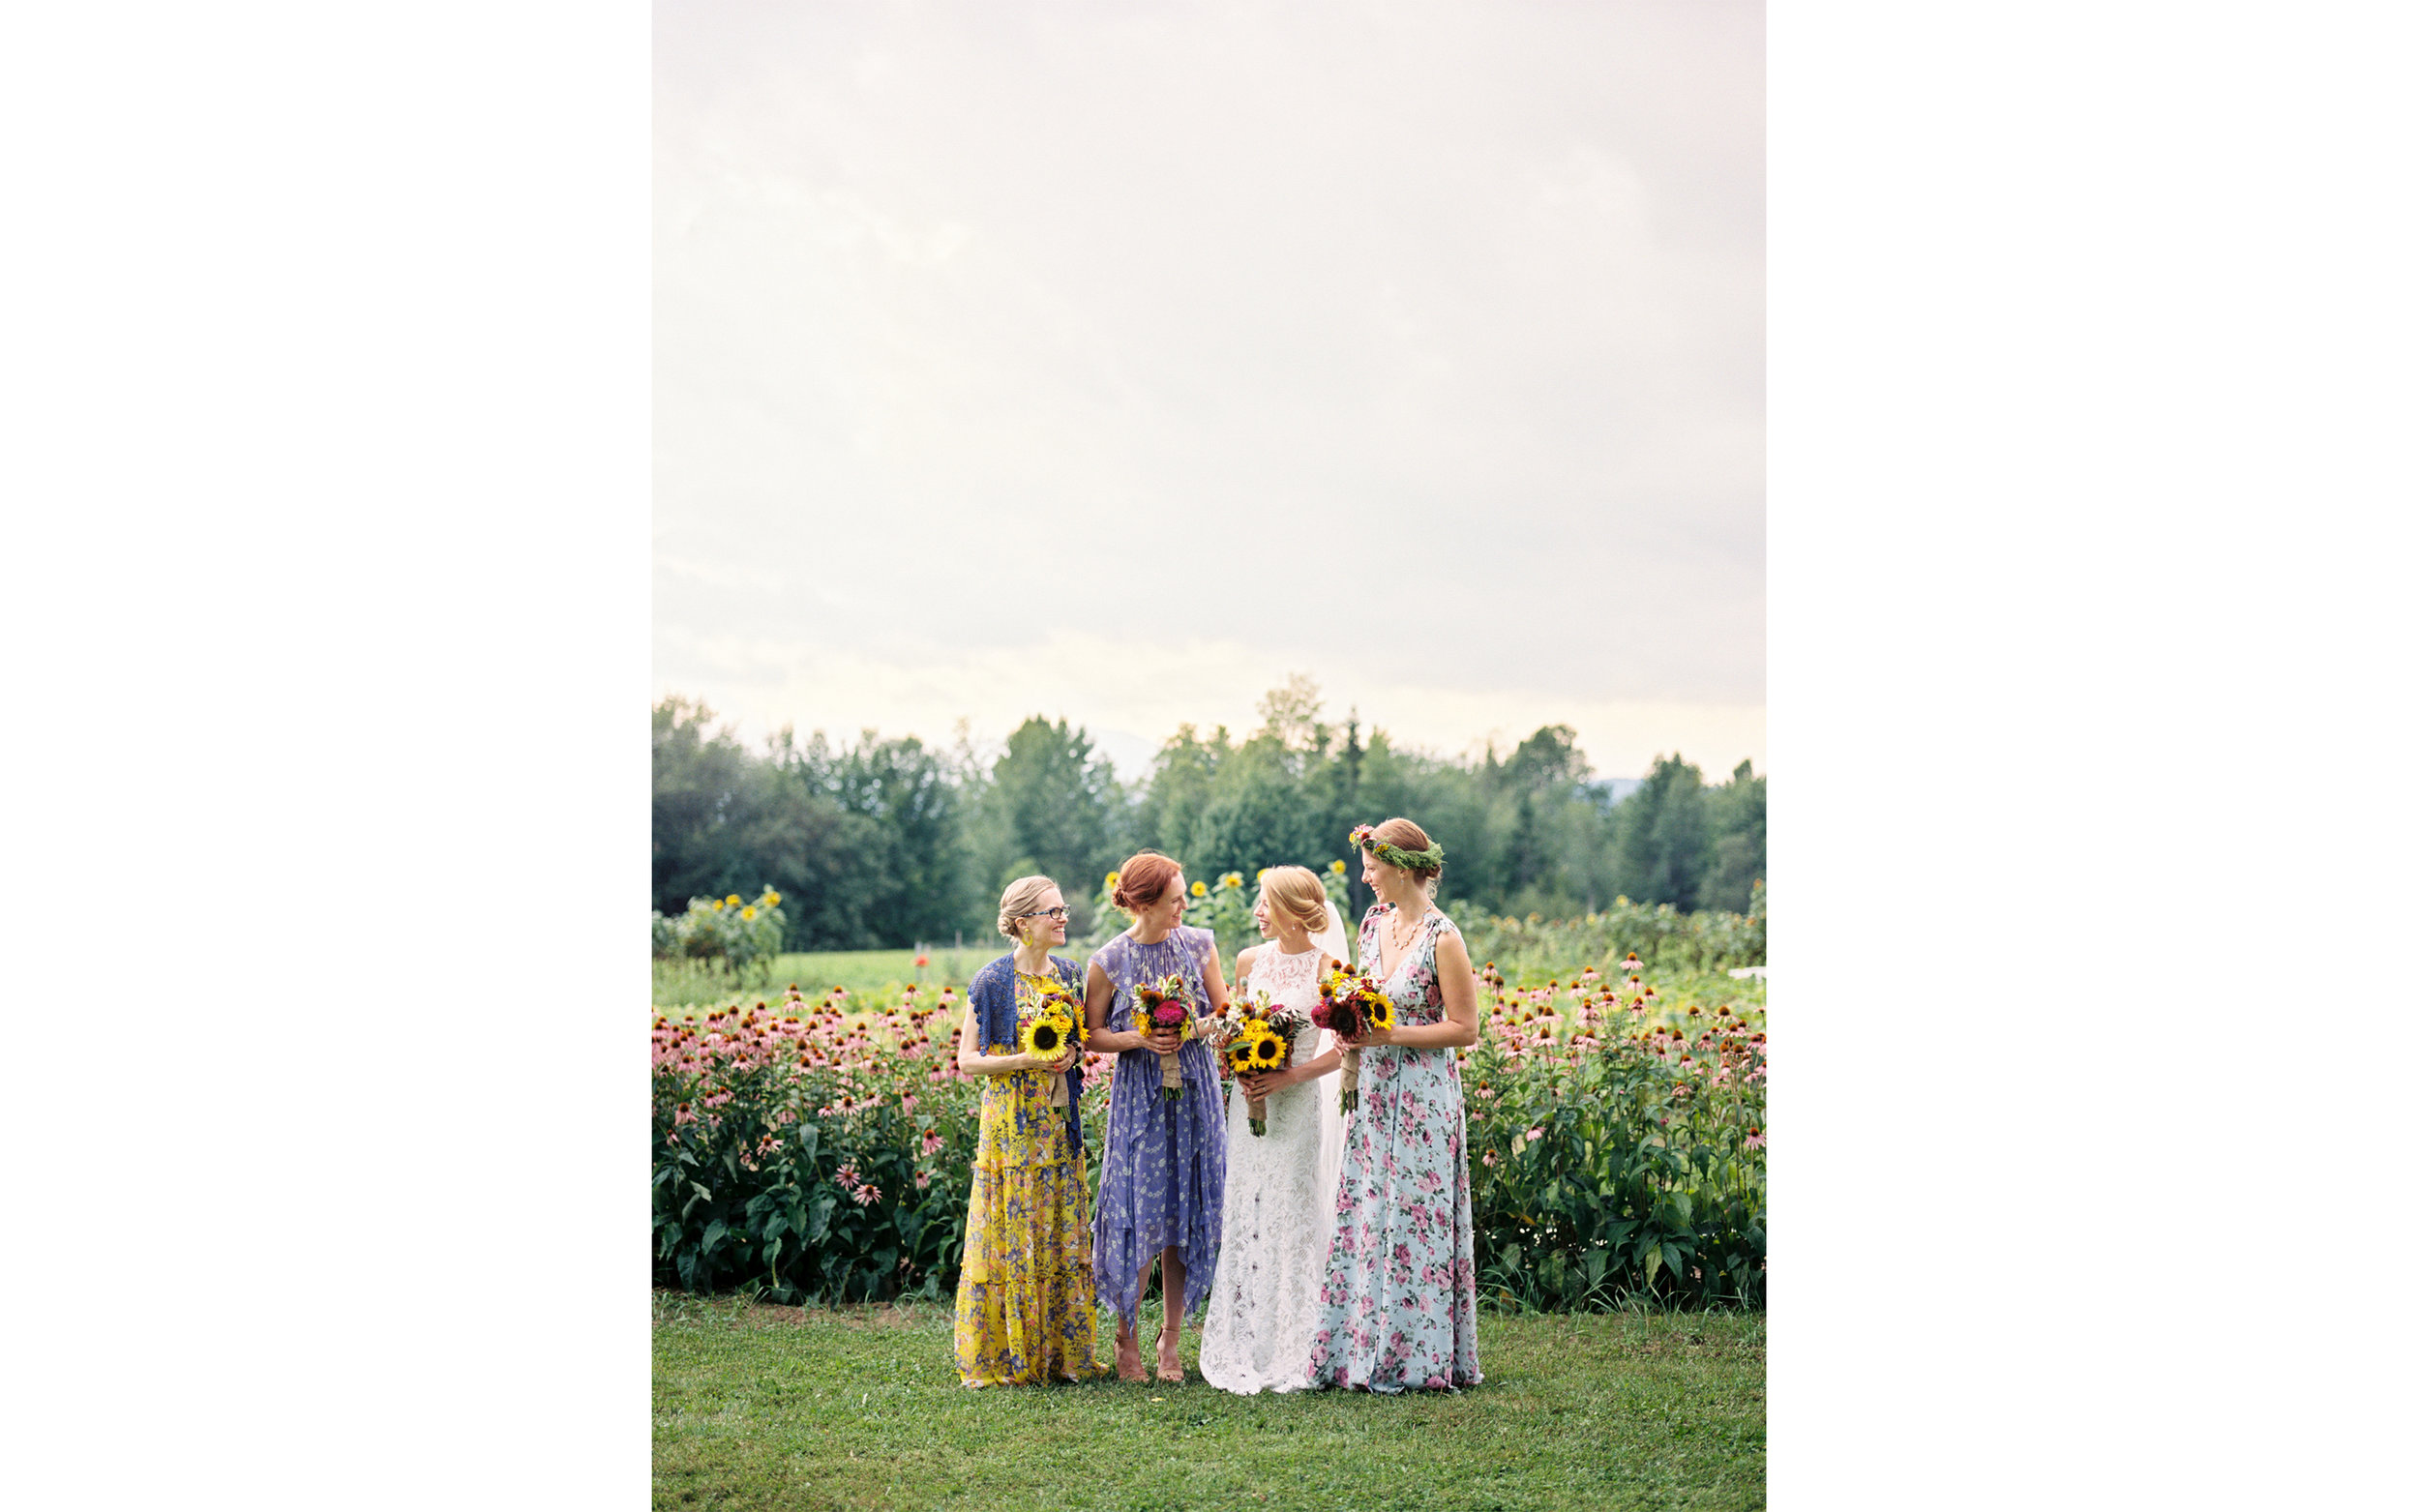 Stowe VT Farm Wedding Fine Art Wedding Photographer_Meg Haley Photographs_009.jpg